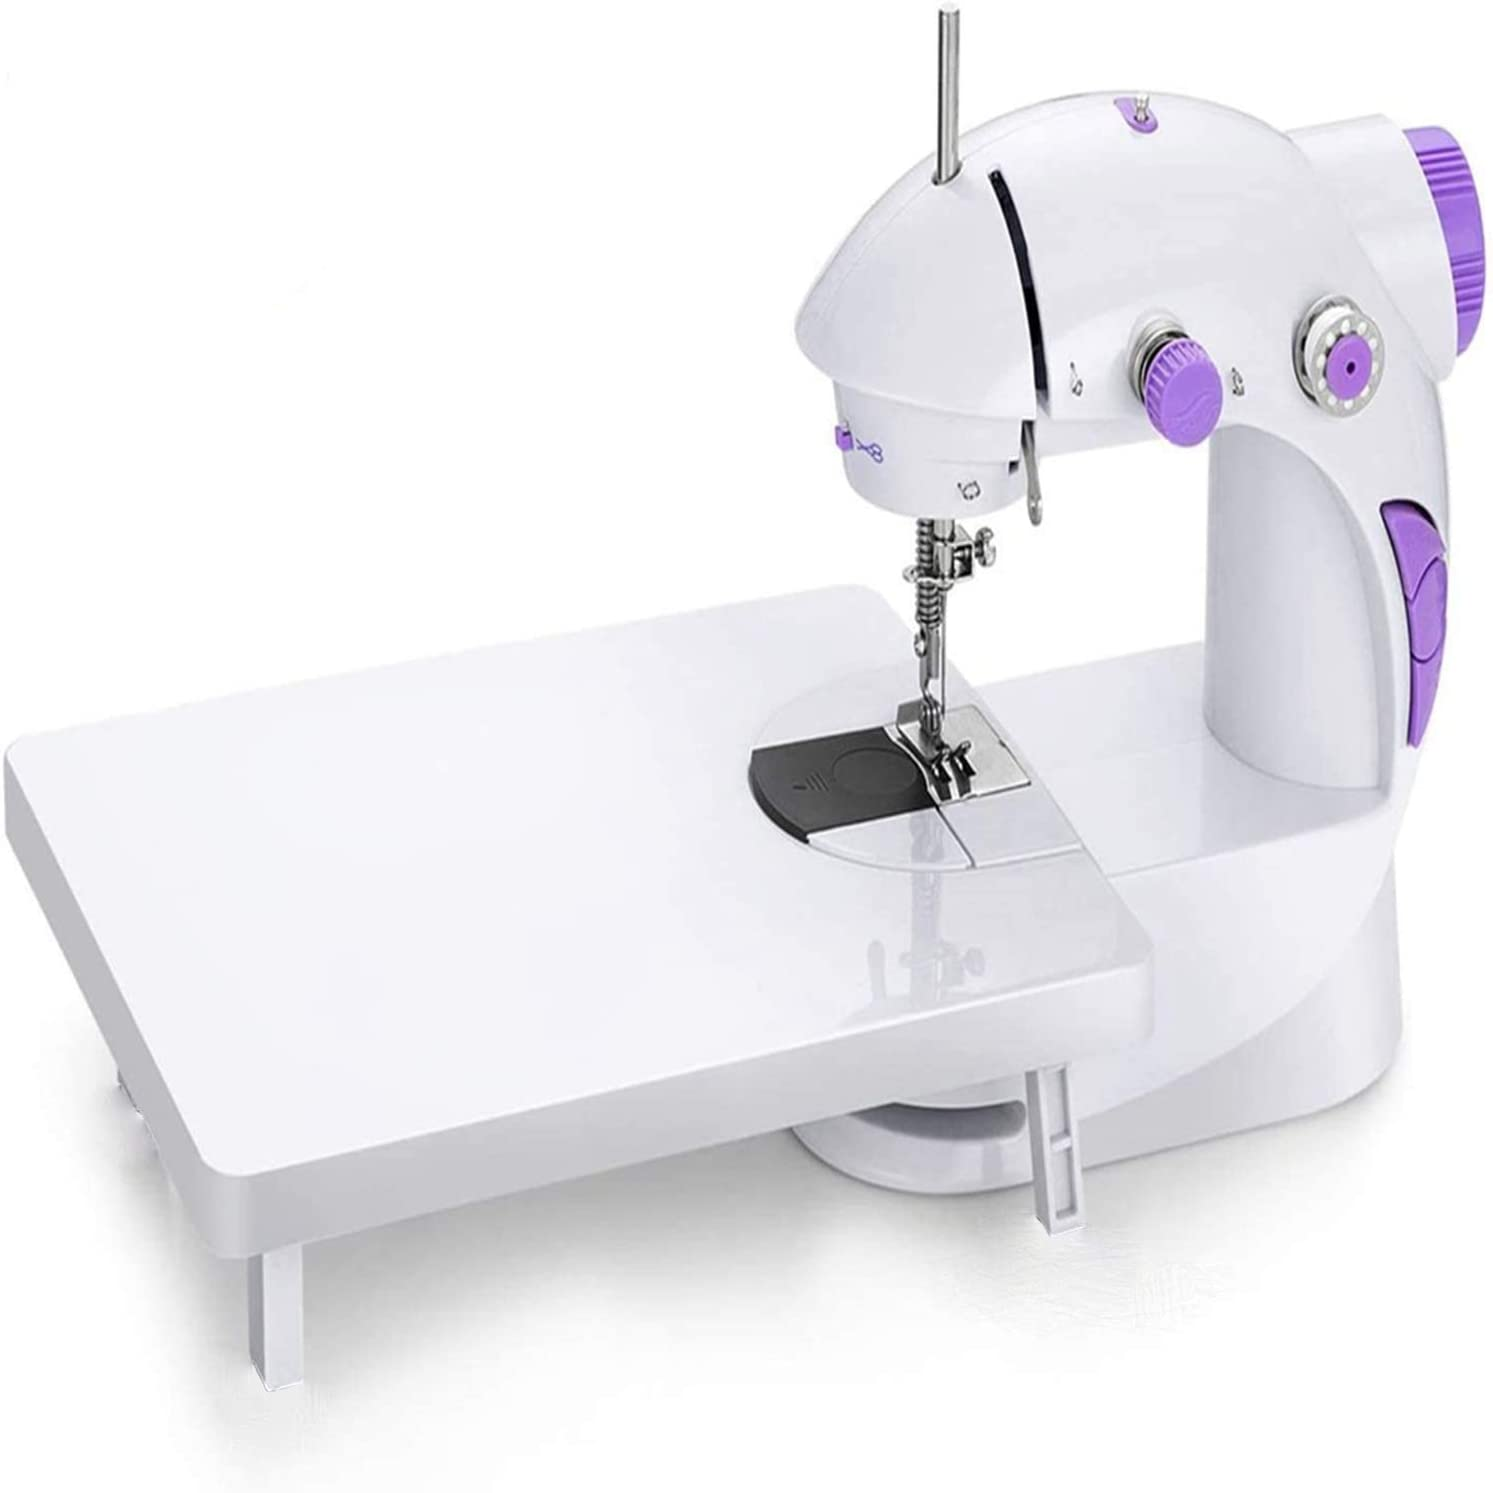 Mini Portable Sewing Machine with Extension Table,Adjustable Double Speed Crafting Mending Machine,for Household Beginners